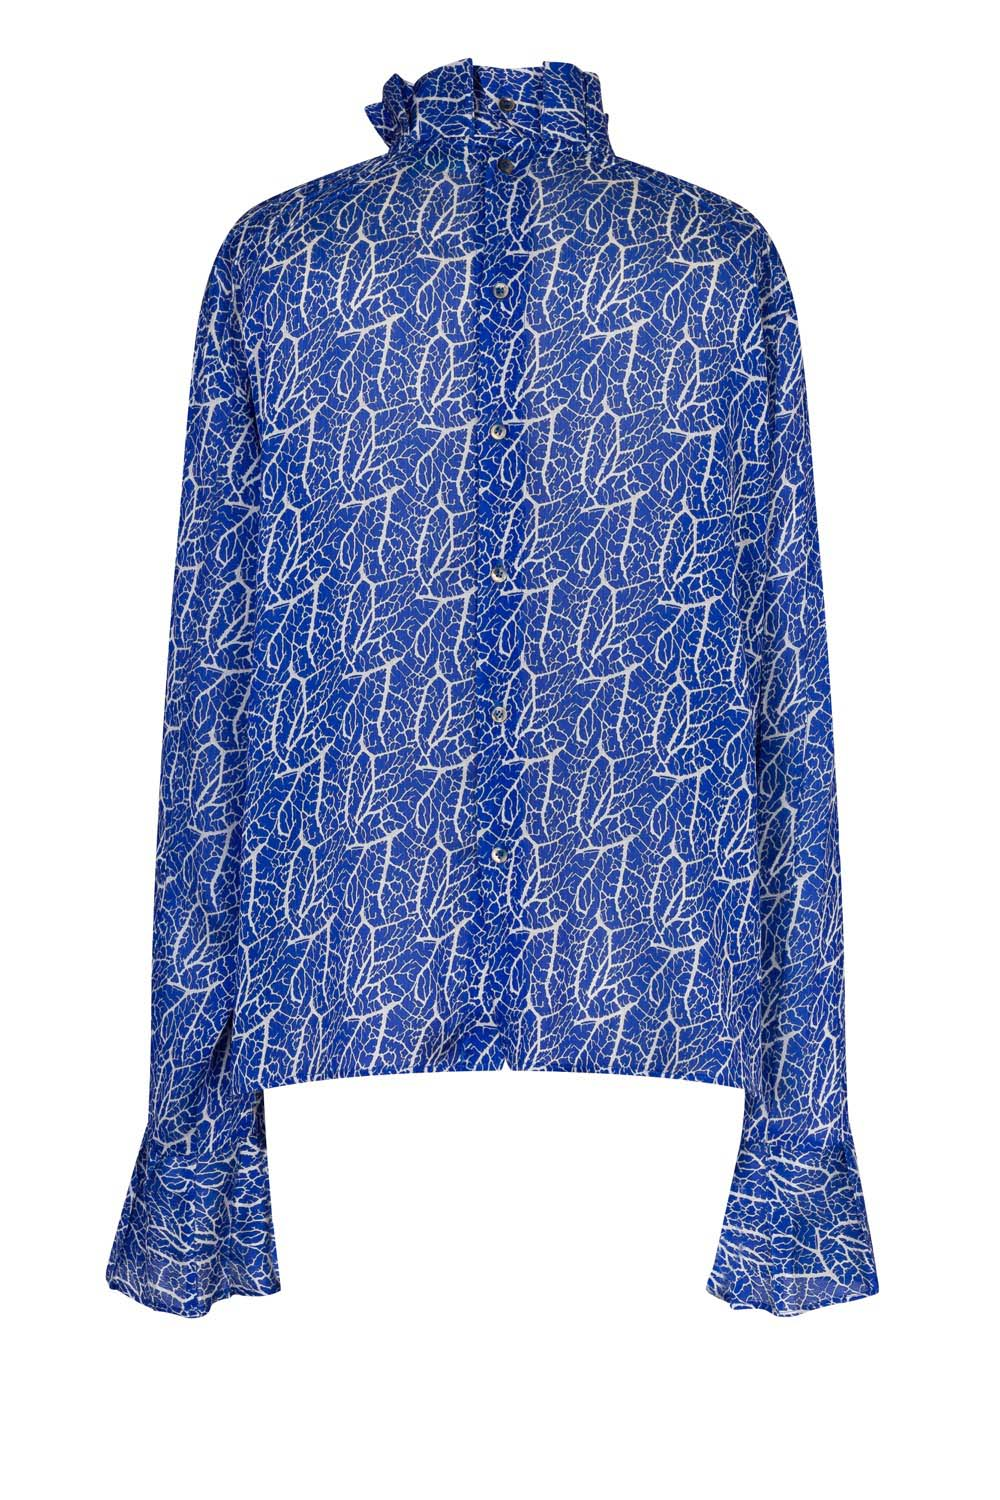 Muse shirt in crépine print